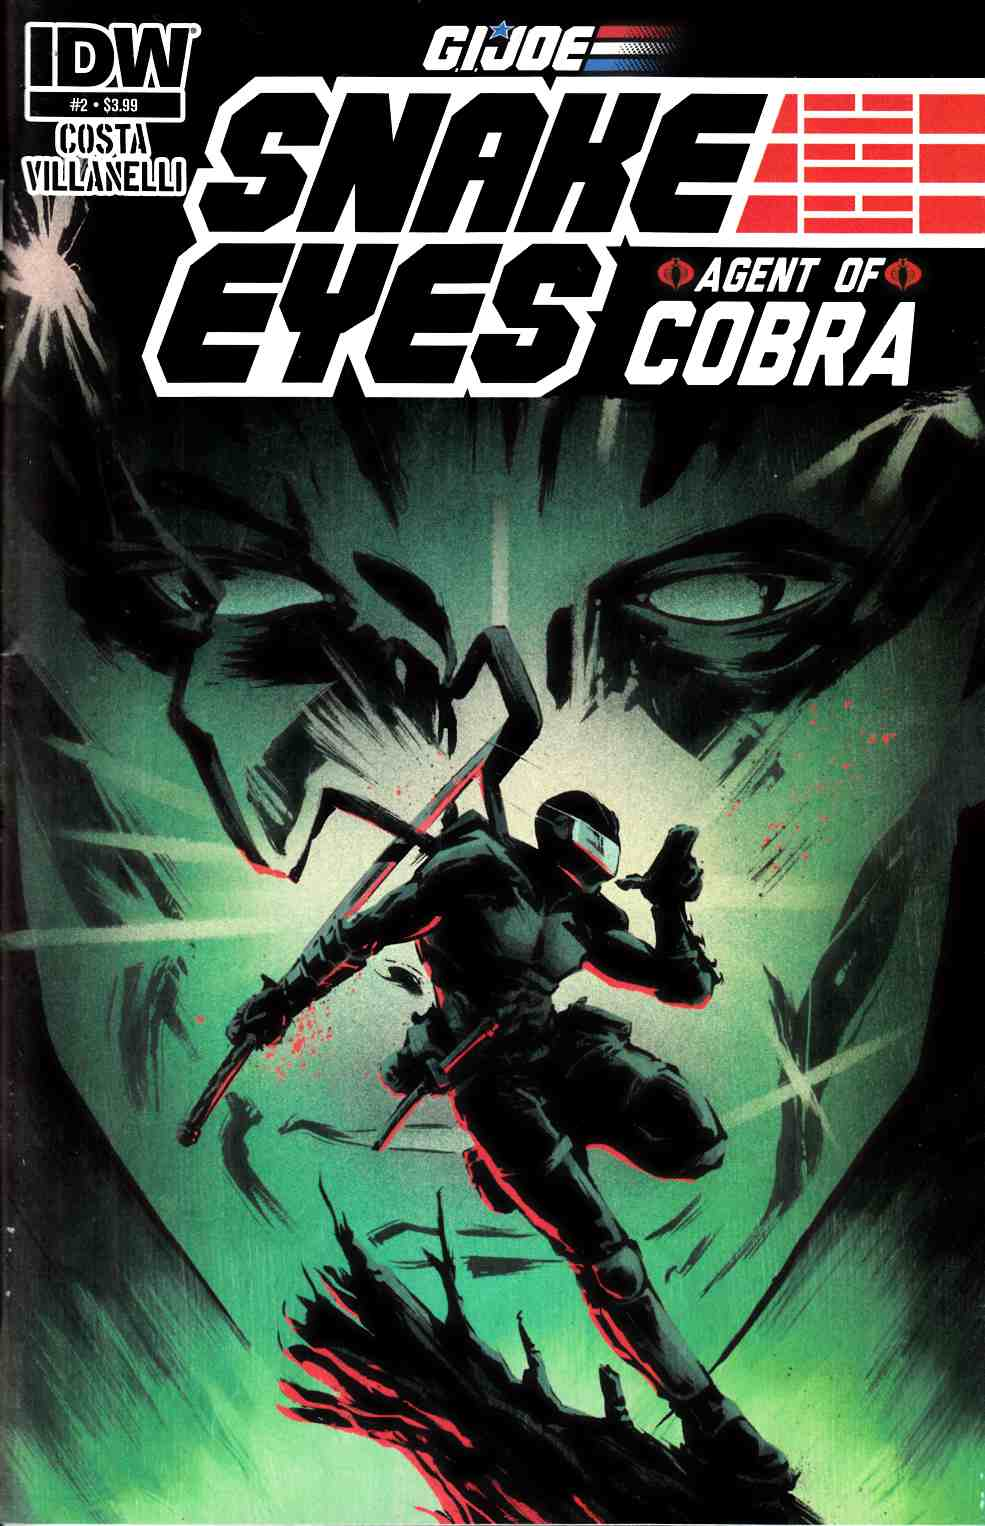 GI Joe Snake Eyes Agent of Cobra #2 [IDW Comic]